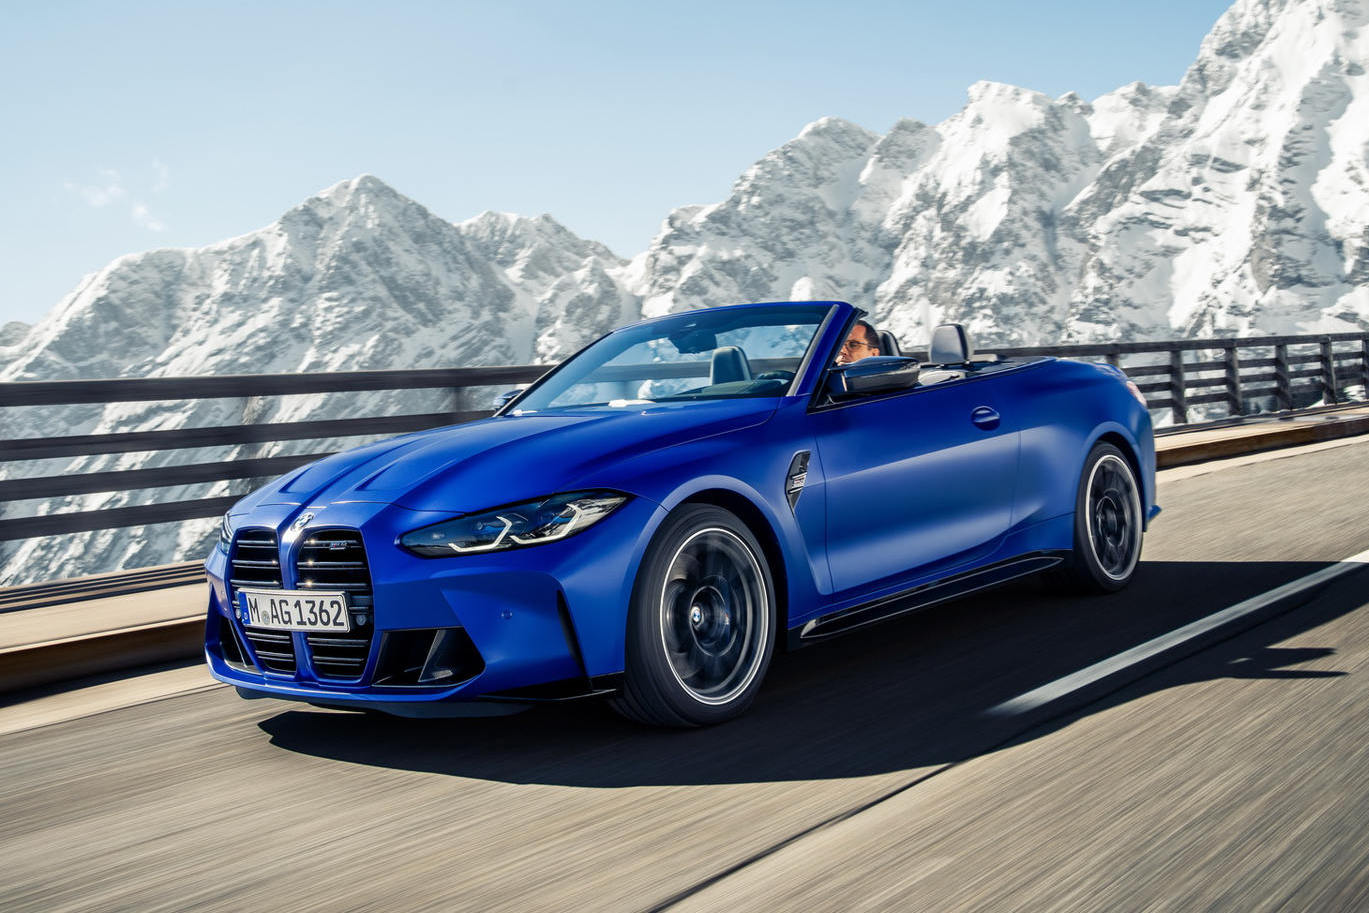 BMW-M4-Competition-Convertible-xdrive_00.jpg